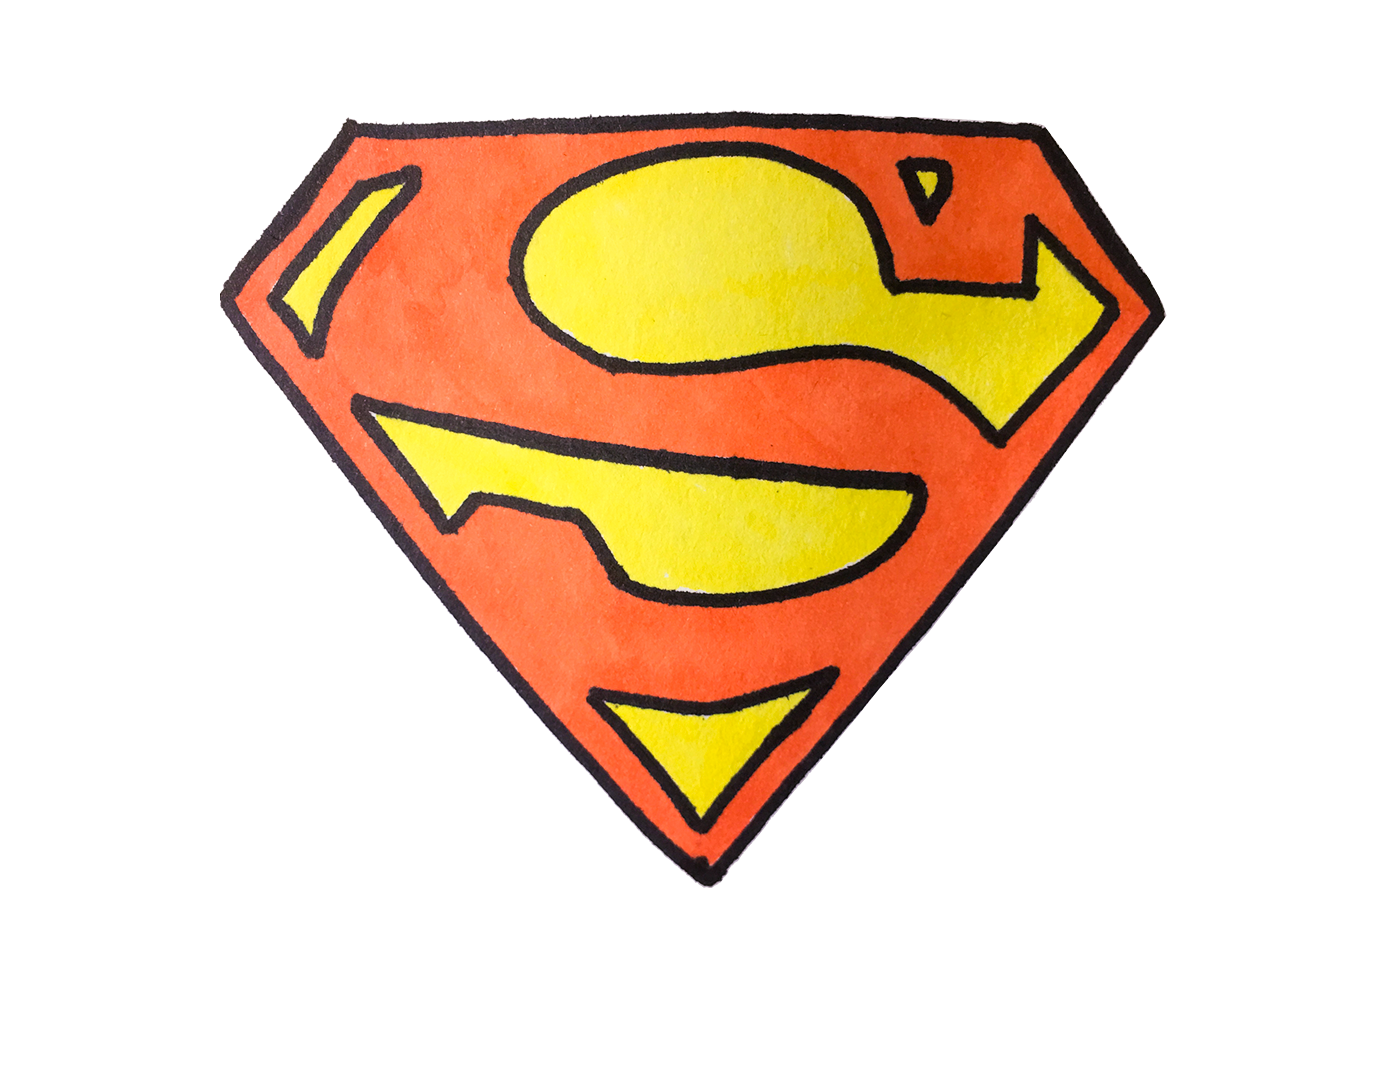 How To Draw Superman Logo Easy Step By Step Superman Drawing Superman Logo Drawing For Beginners